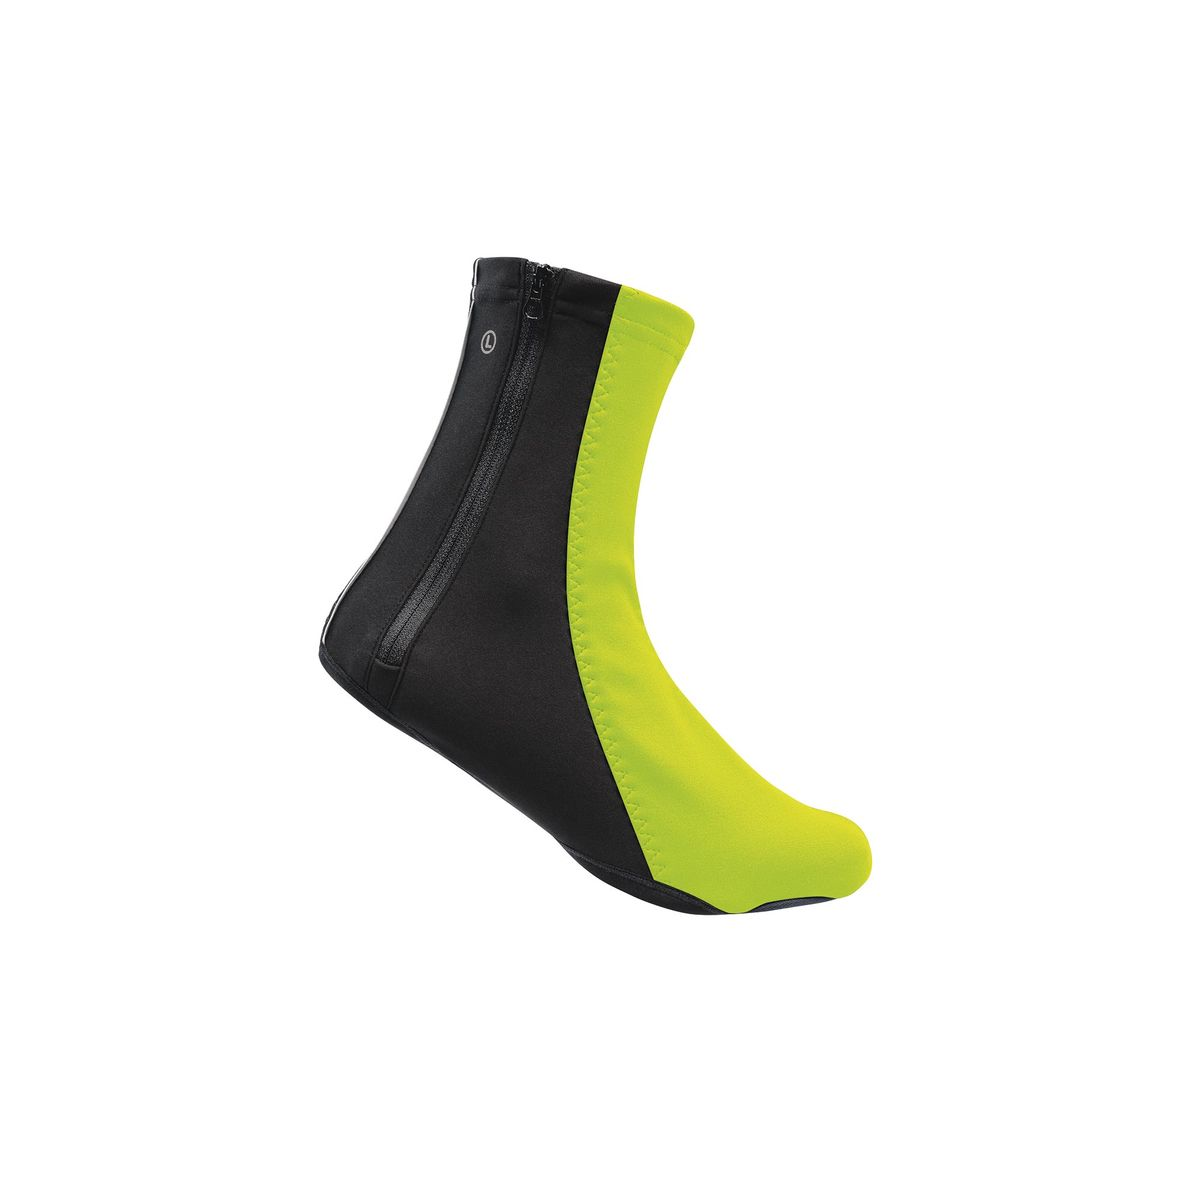 UNIVERSAL GORE WINDSTOPPER overshoes